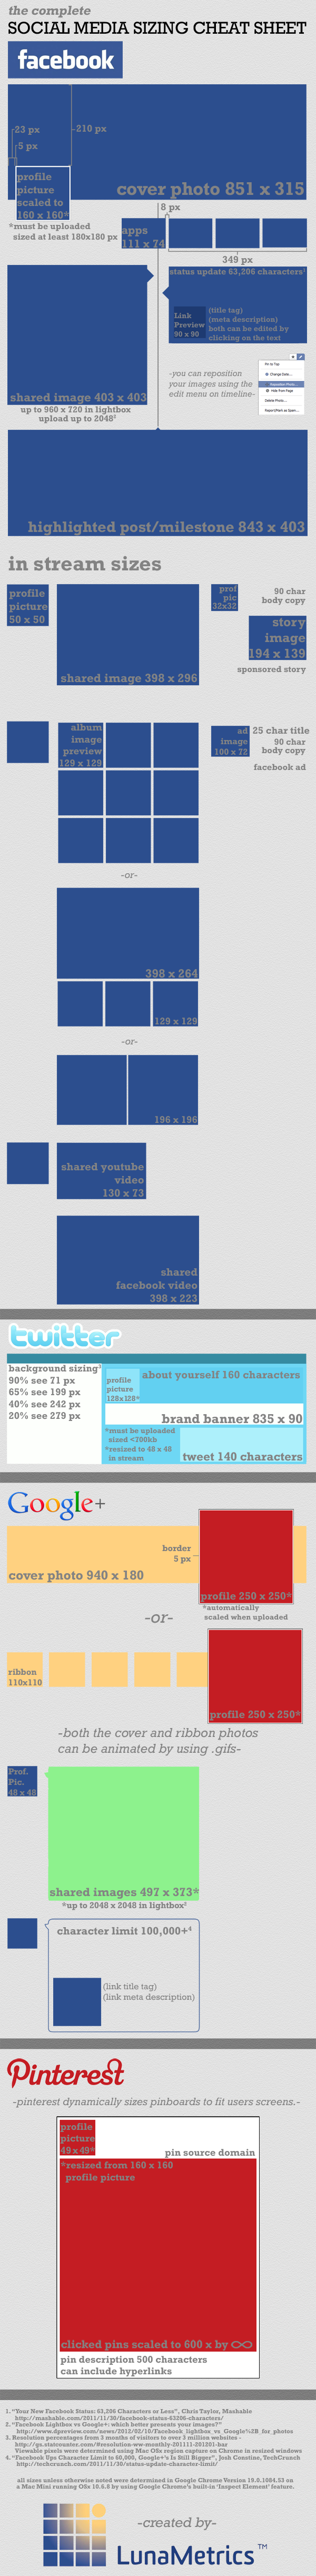 social media image size cheat sheet1 The Complete Social Media Sizing Cheat Sheet [Infographic]